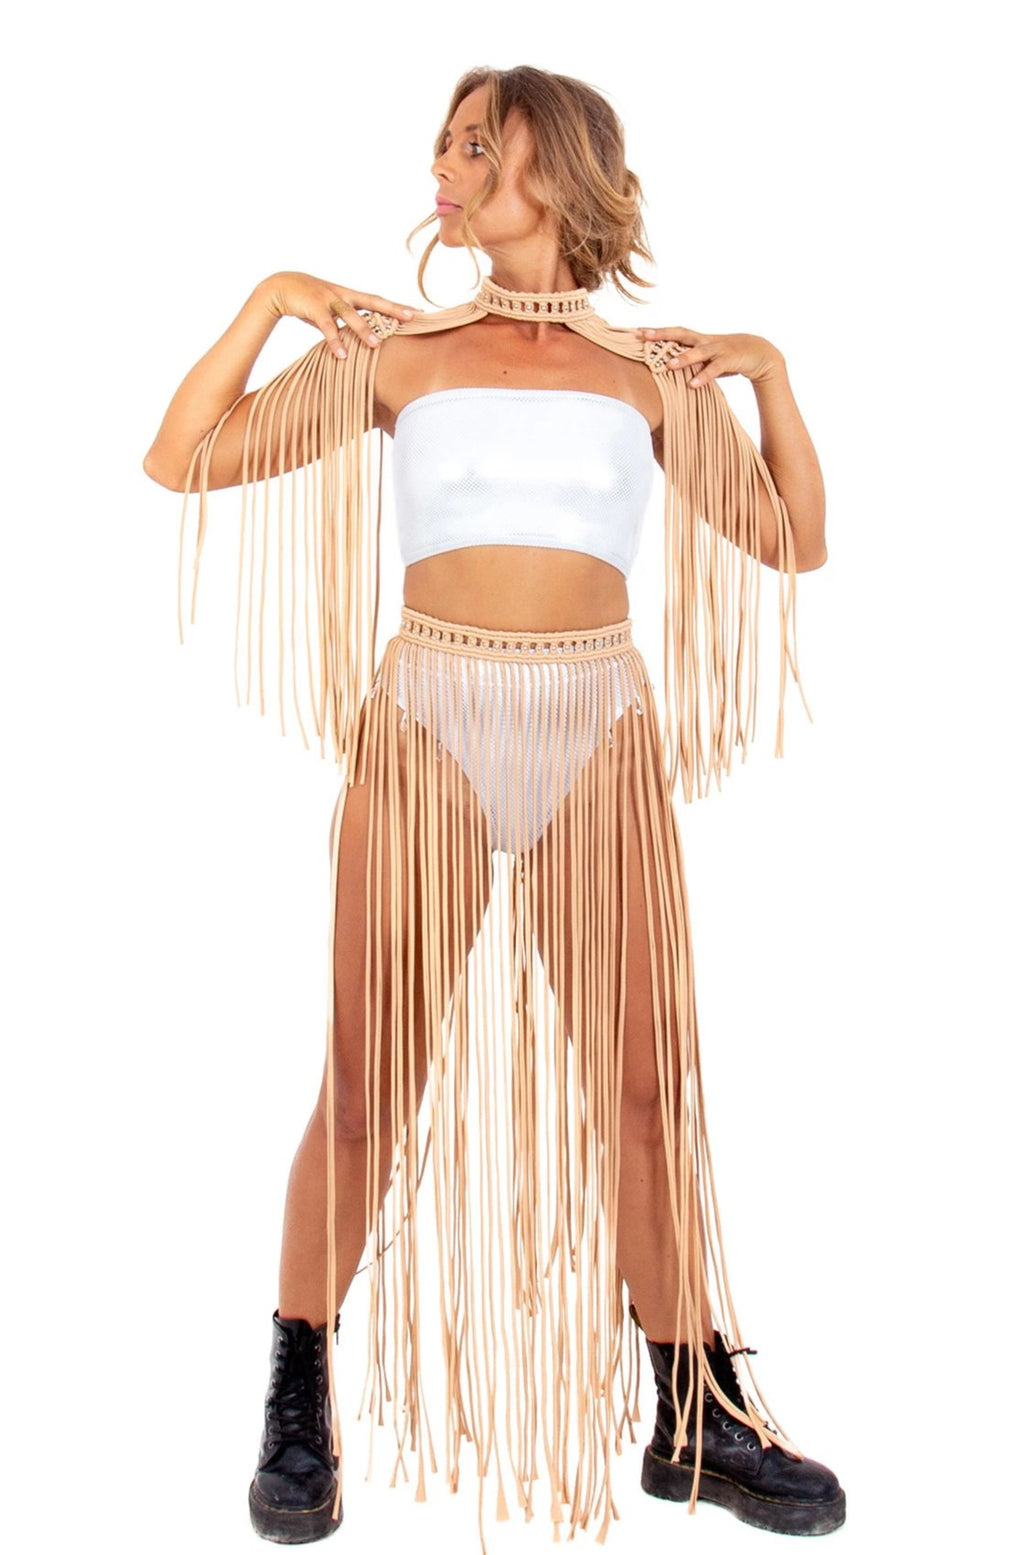 macrame fringe skirt, edm rave outfit party dress, plus size festival costume, burning man clothing